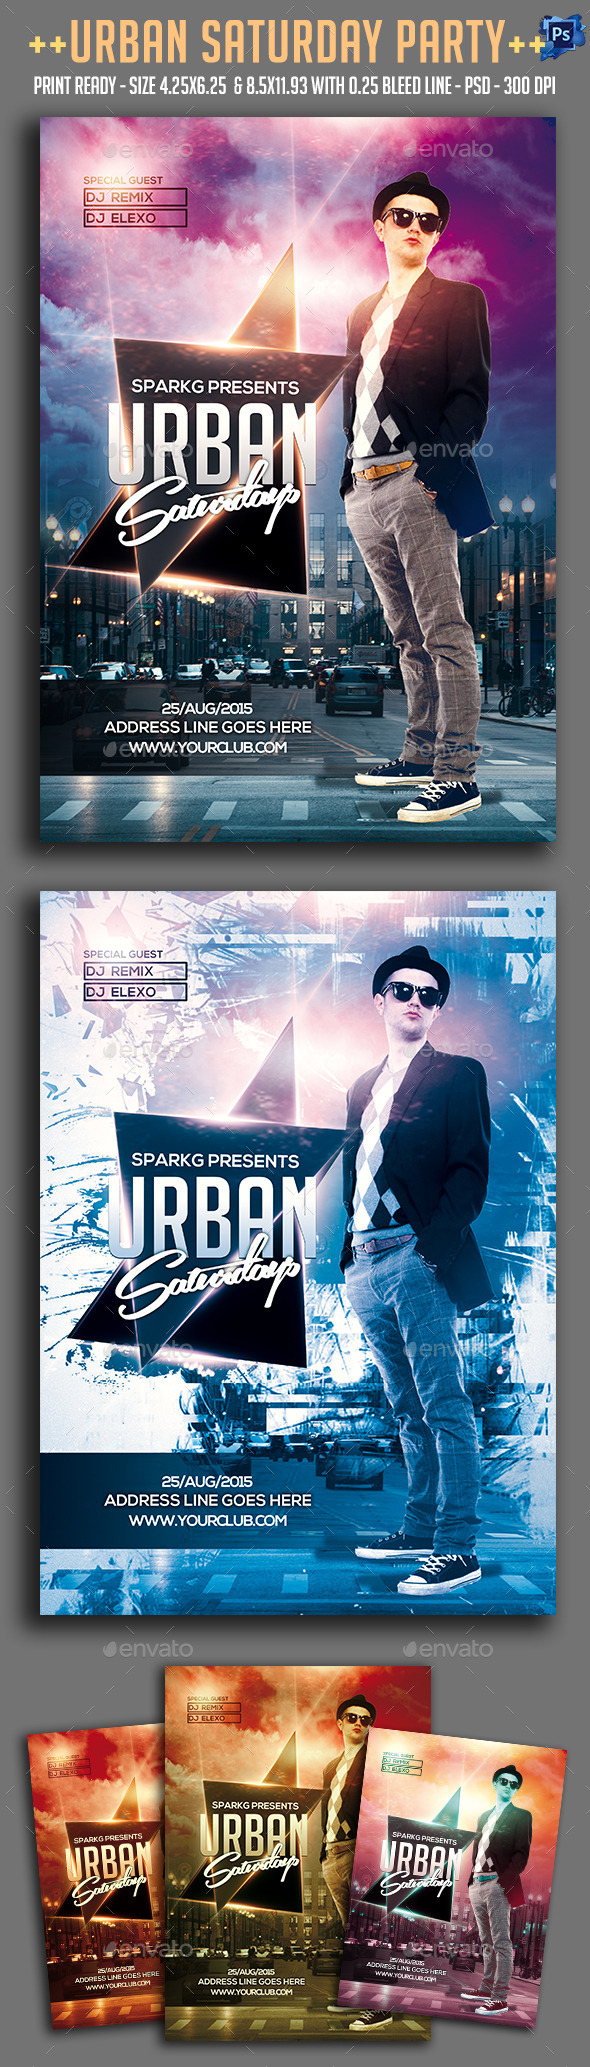 Urban Saturday Party Flyer  - Clubs & Parties Events